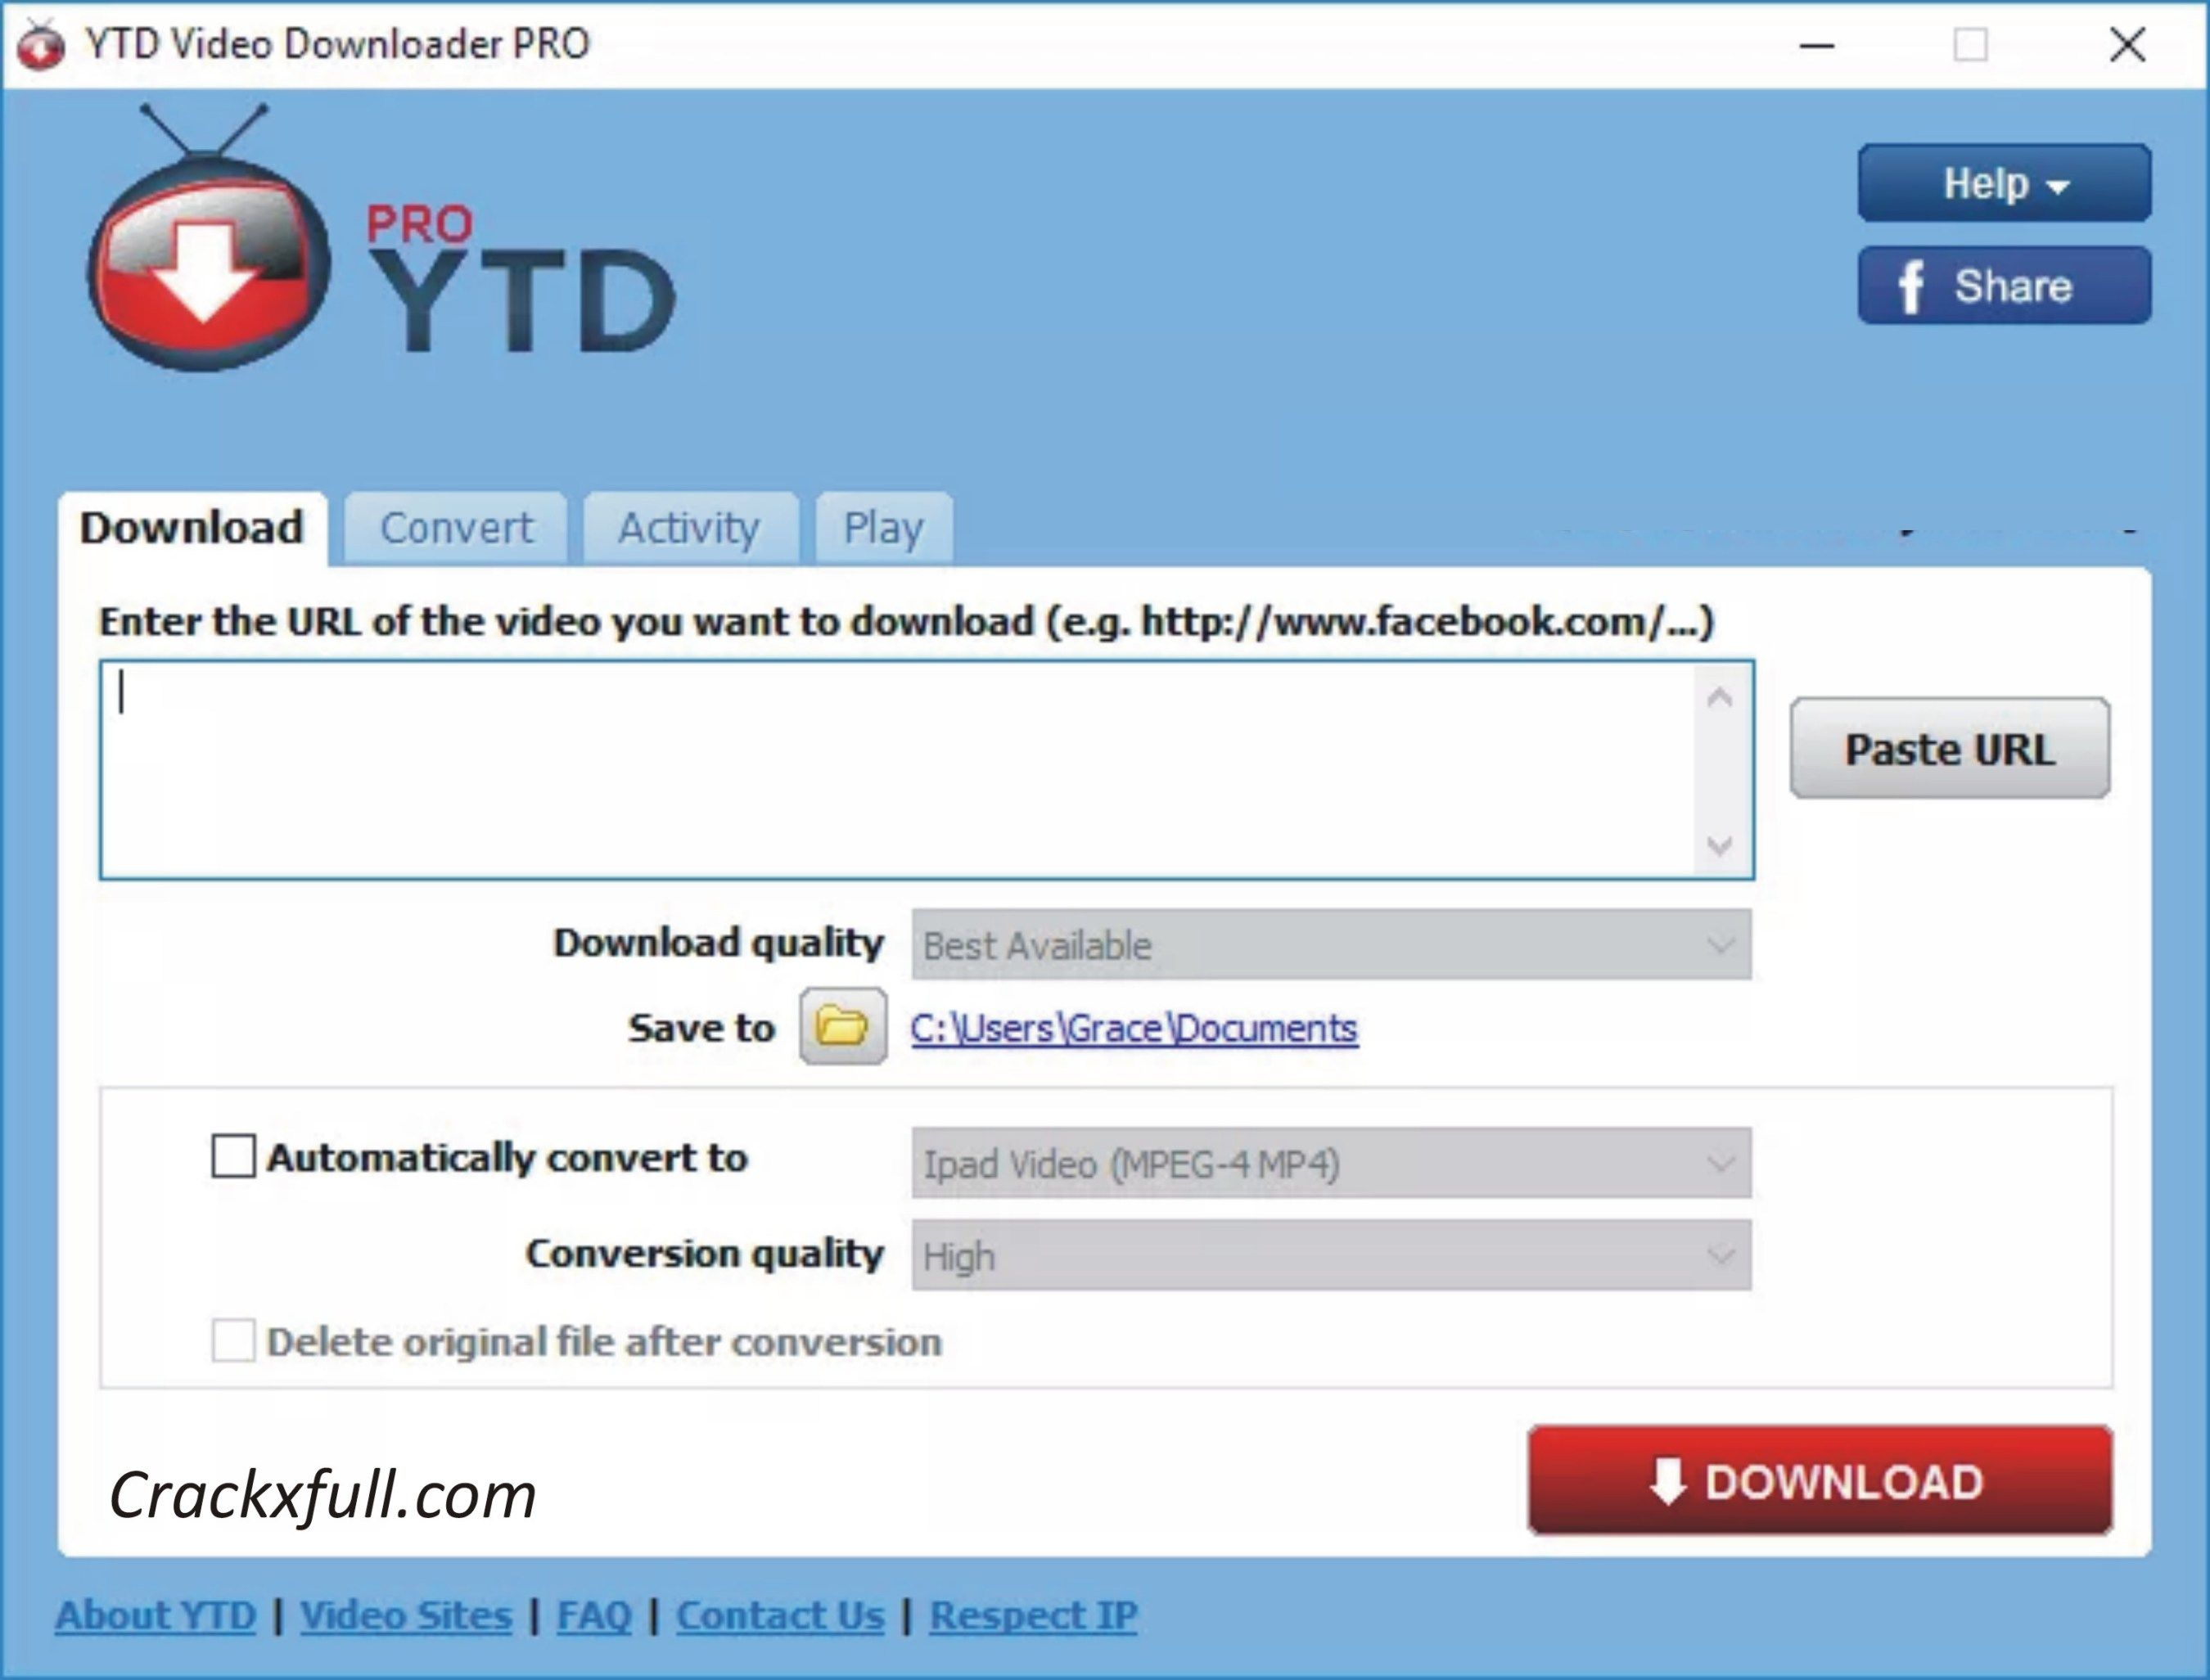 YTD Video Downloader Pro 5 8 Crack & Serial Key Download